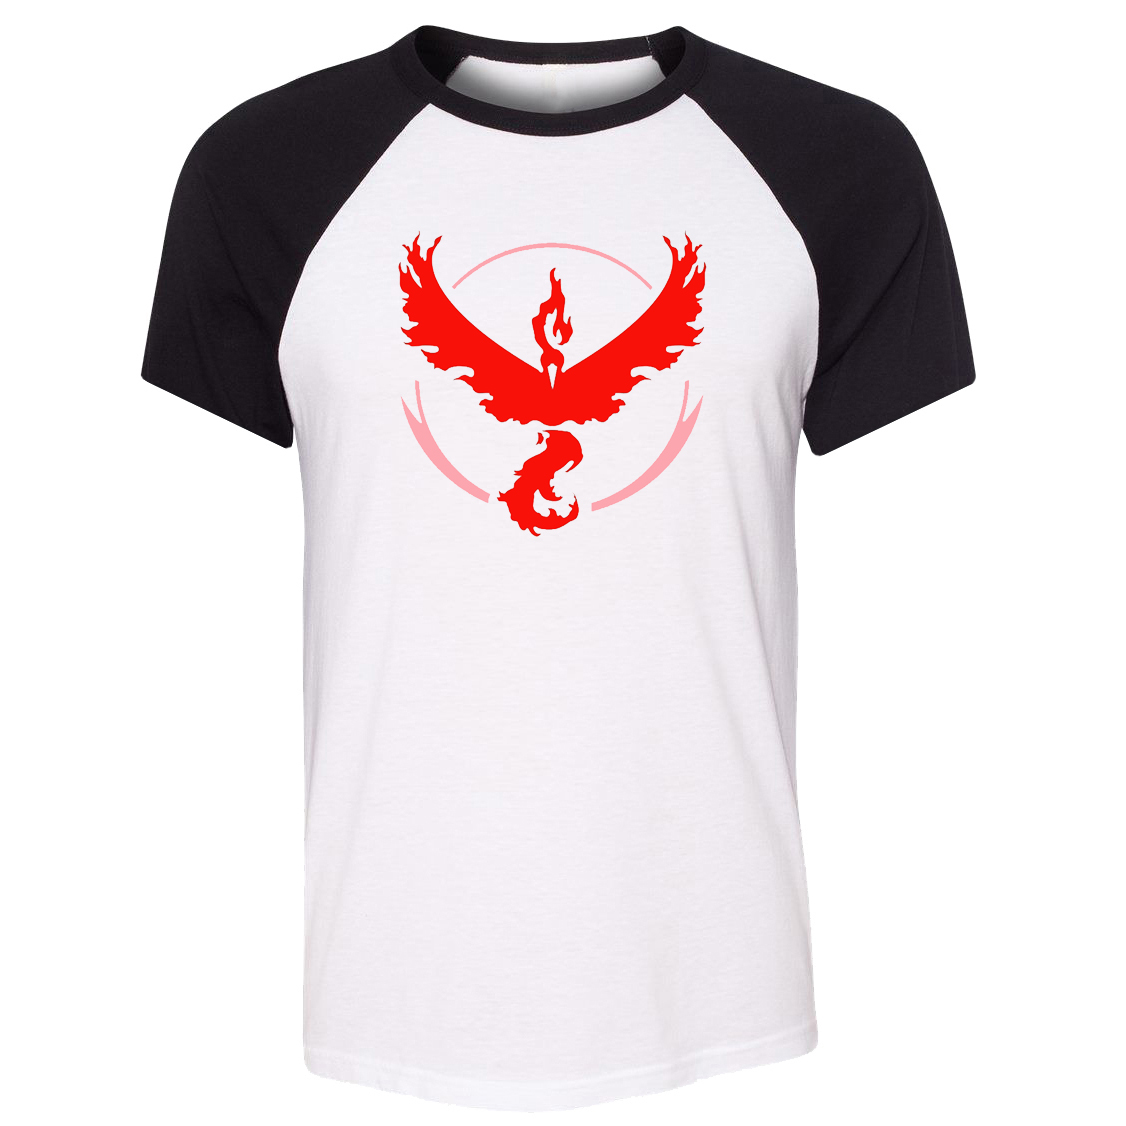 iDzn Unisex T-shirt Pokemon Go Game Fans Articuno Zapdos Moltres team Art Pattern Raglan Short Sleeve Men T shirt print Tee Tops